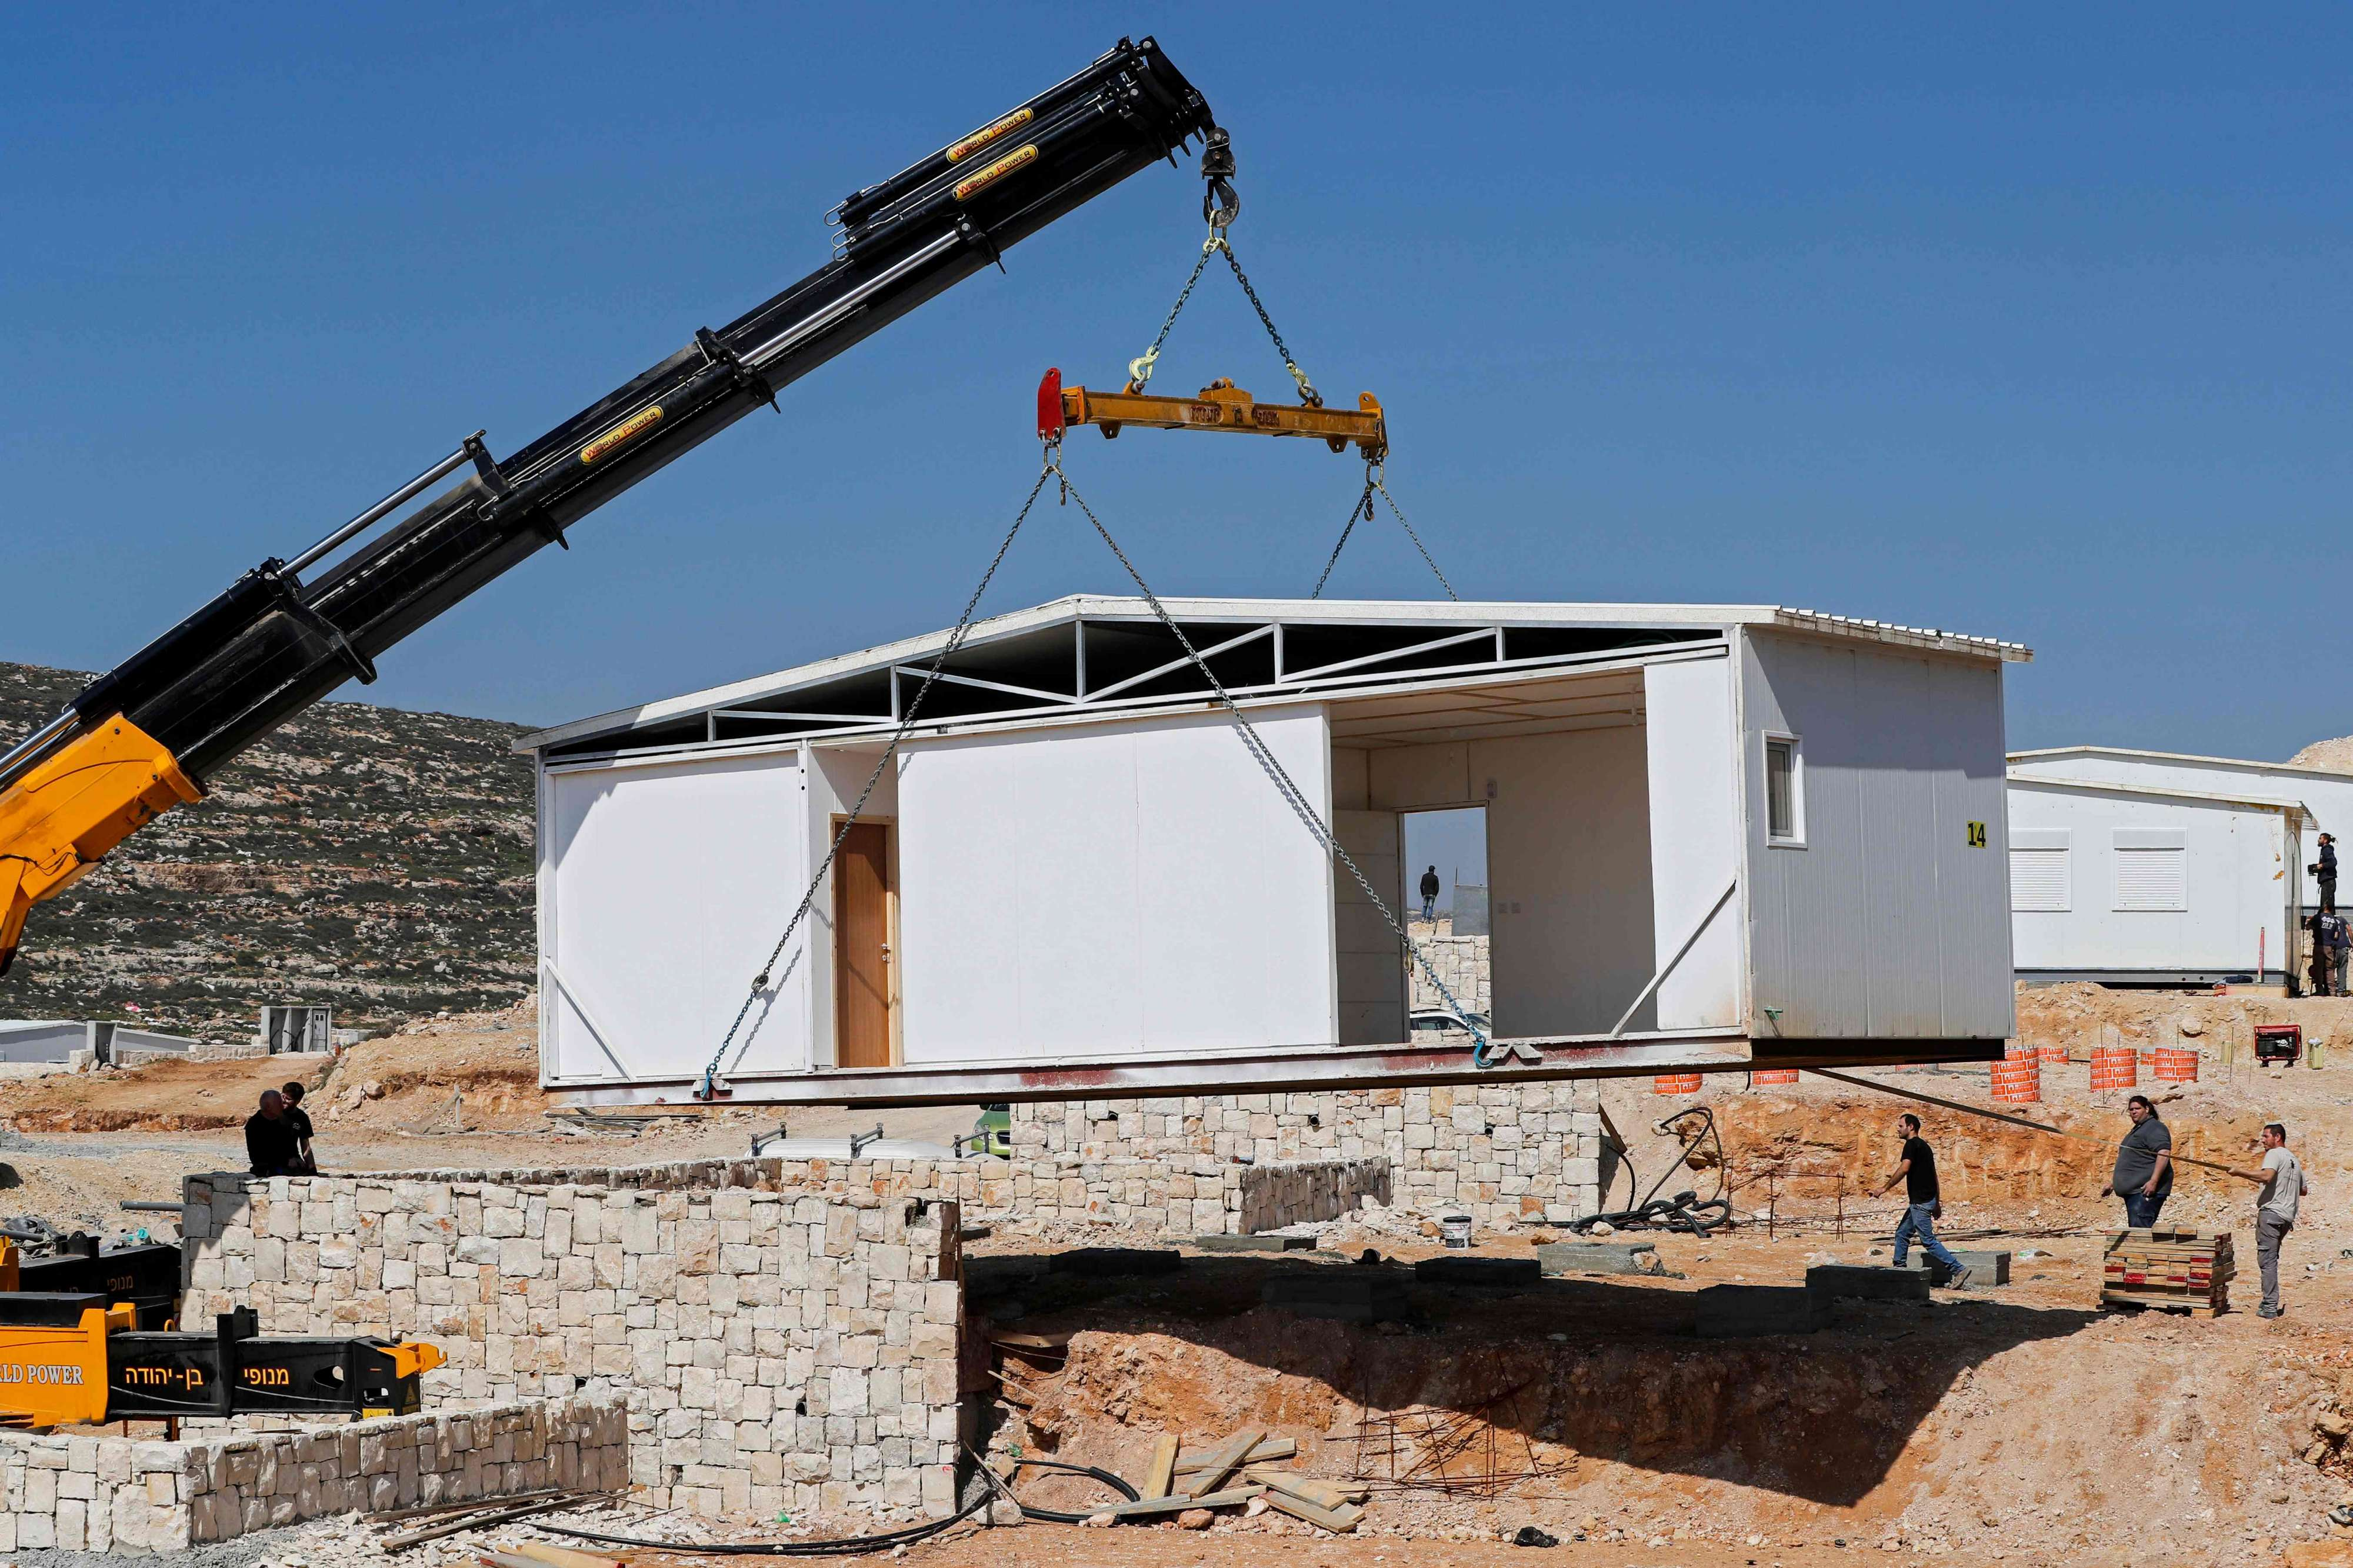 A construction crane installs a new mobile homes in Amichai near the settlement of Shiloh in the Israeli-occupied West Bank, on February 21.